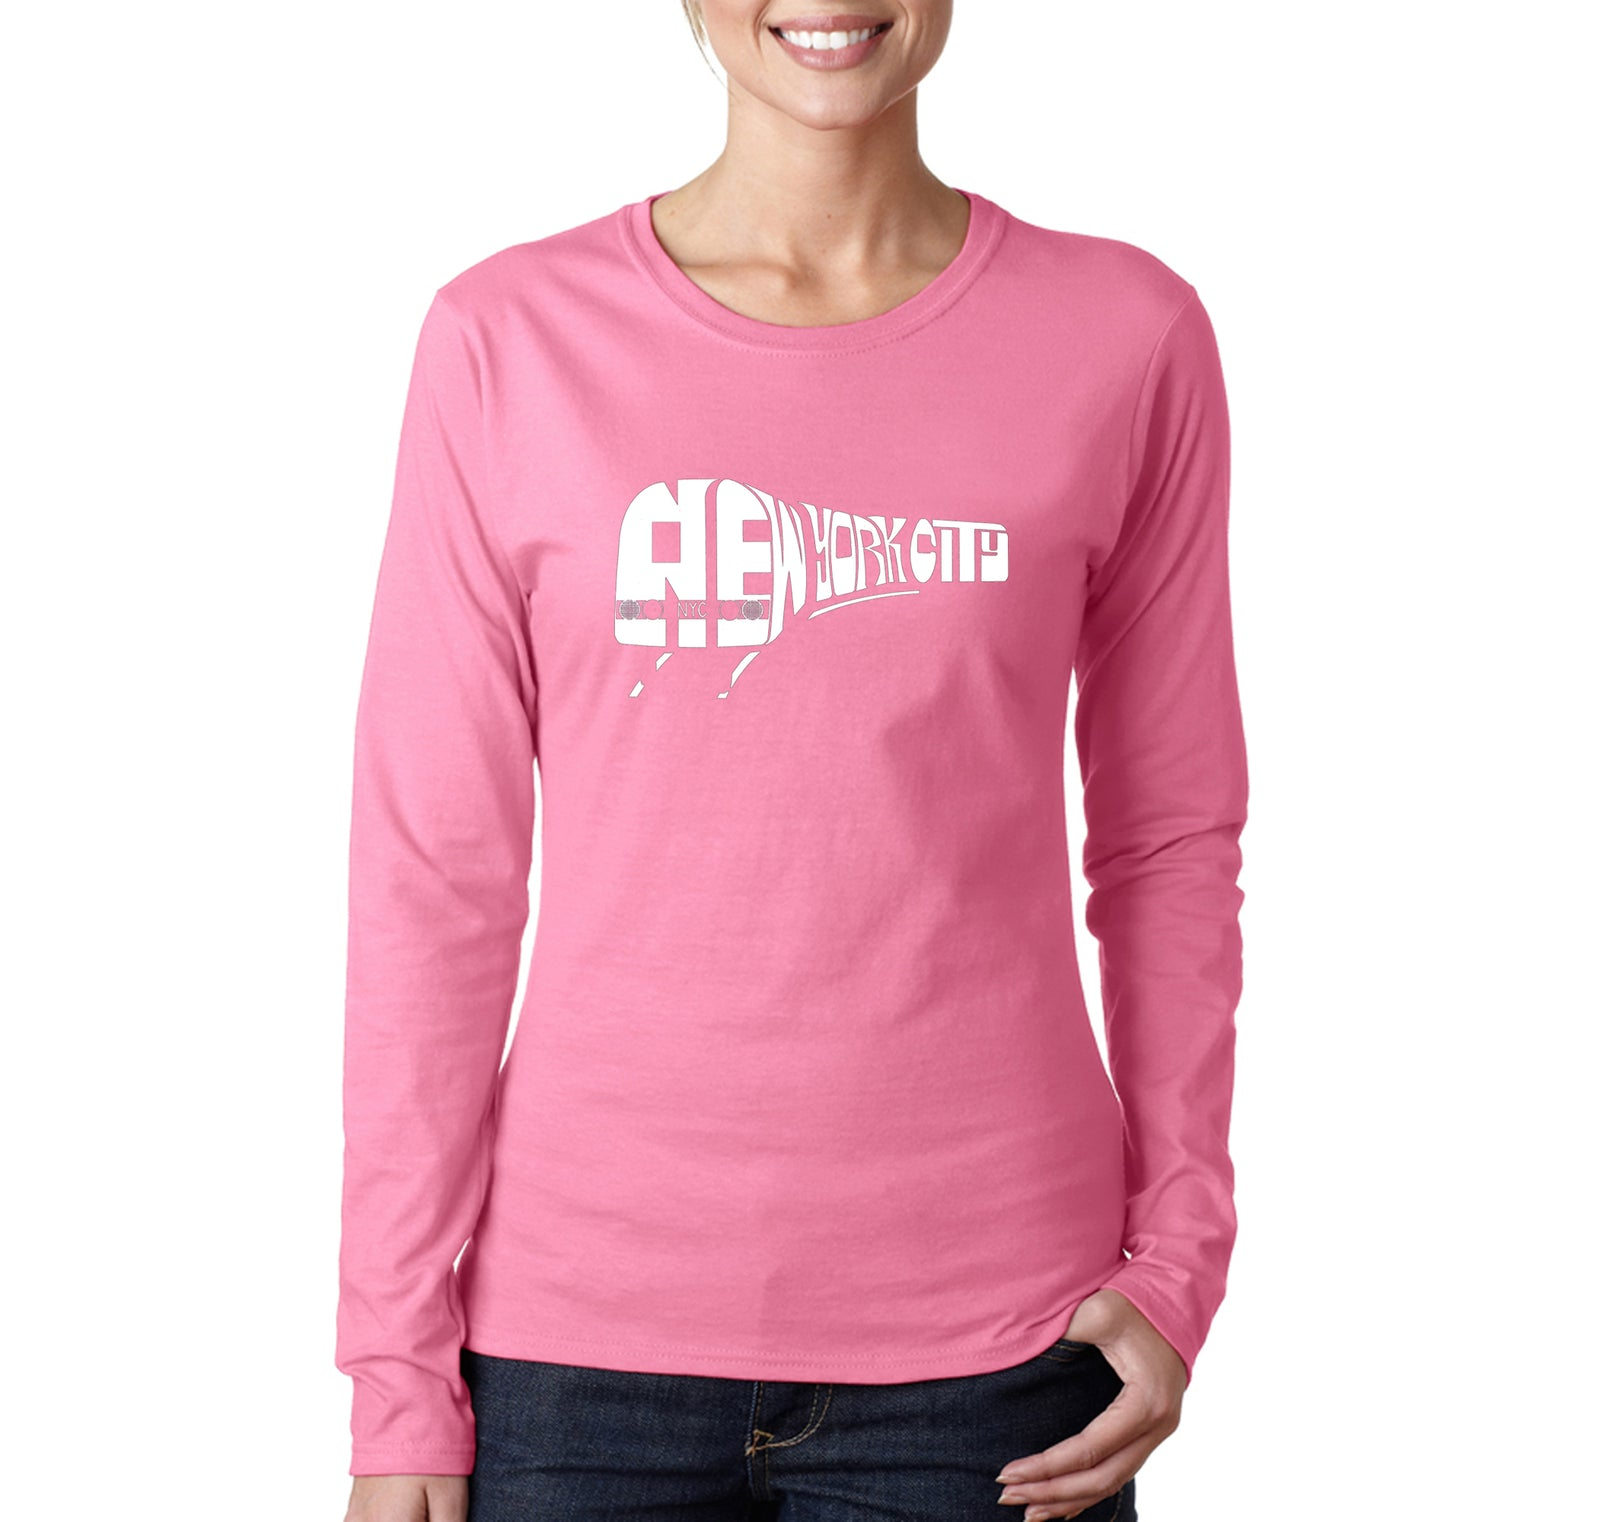 Women's Long Sleeve T-Shirt - NY SUBWAY